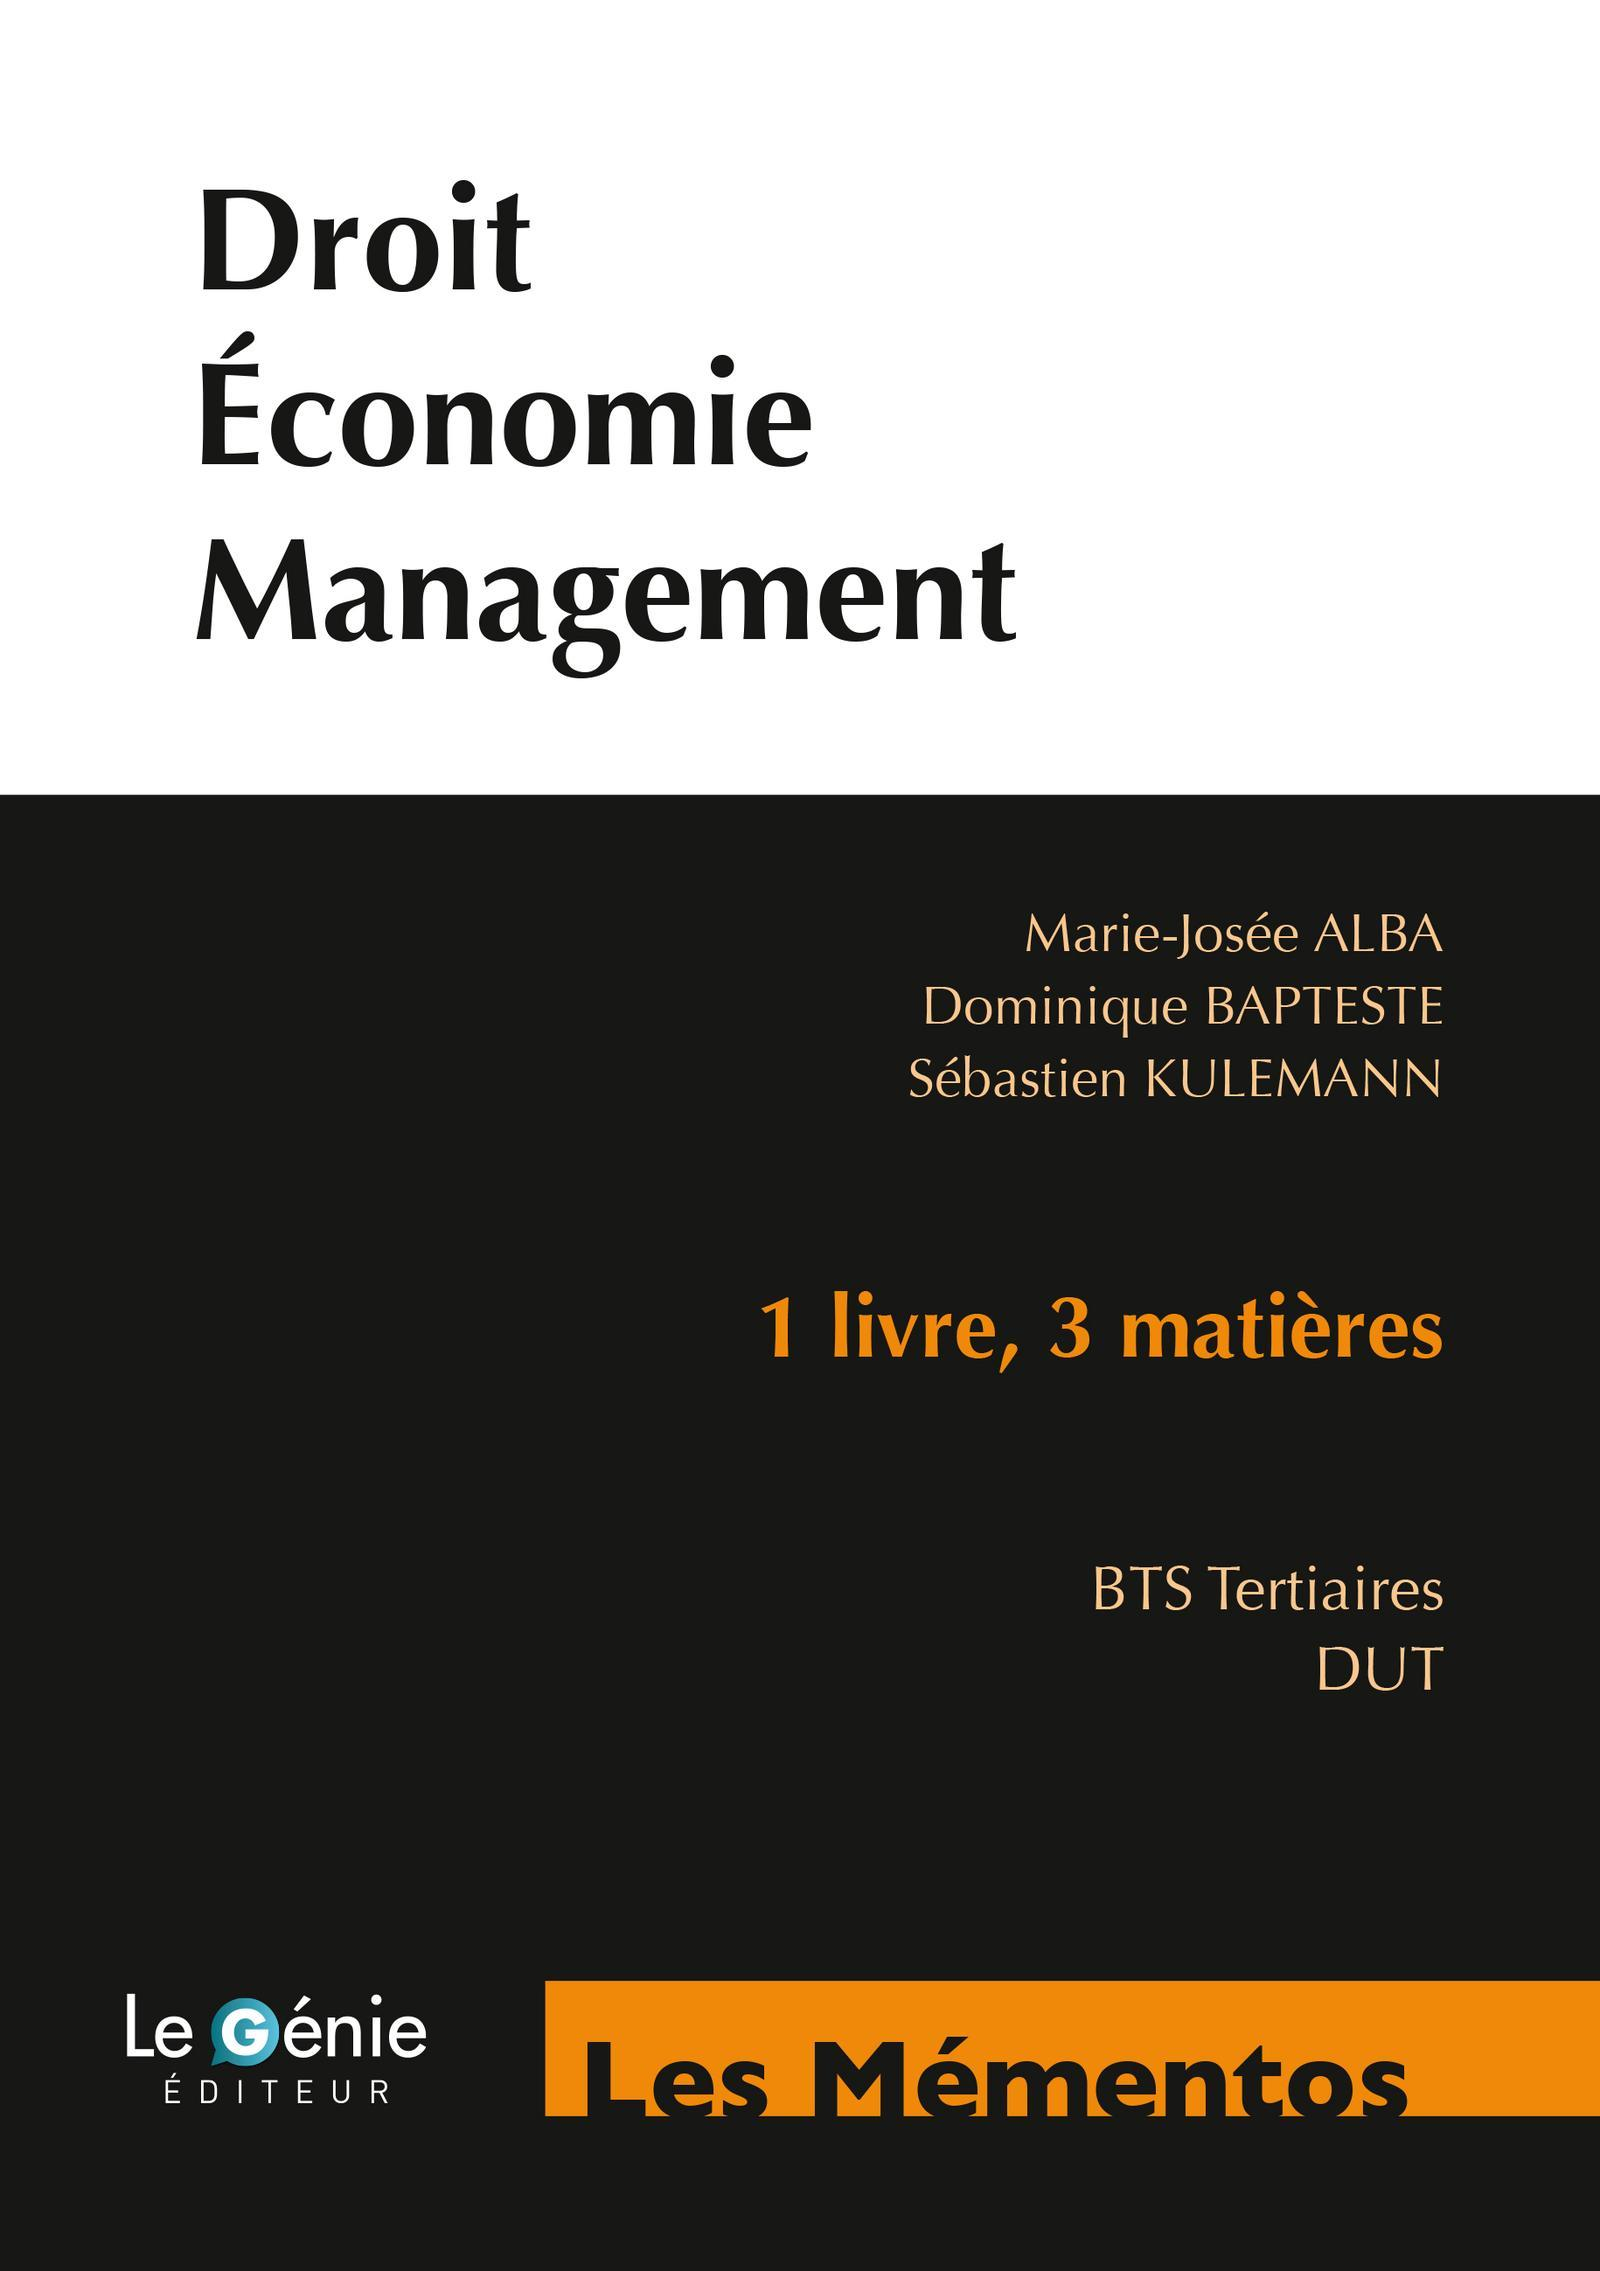 DROIT ECONOMIE MANAGEMENT